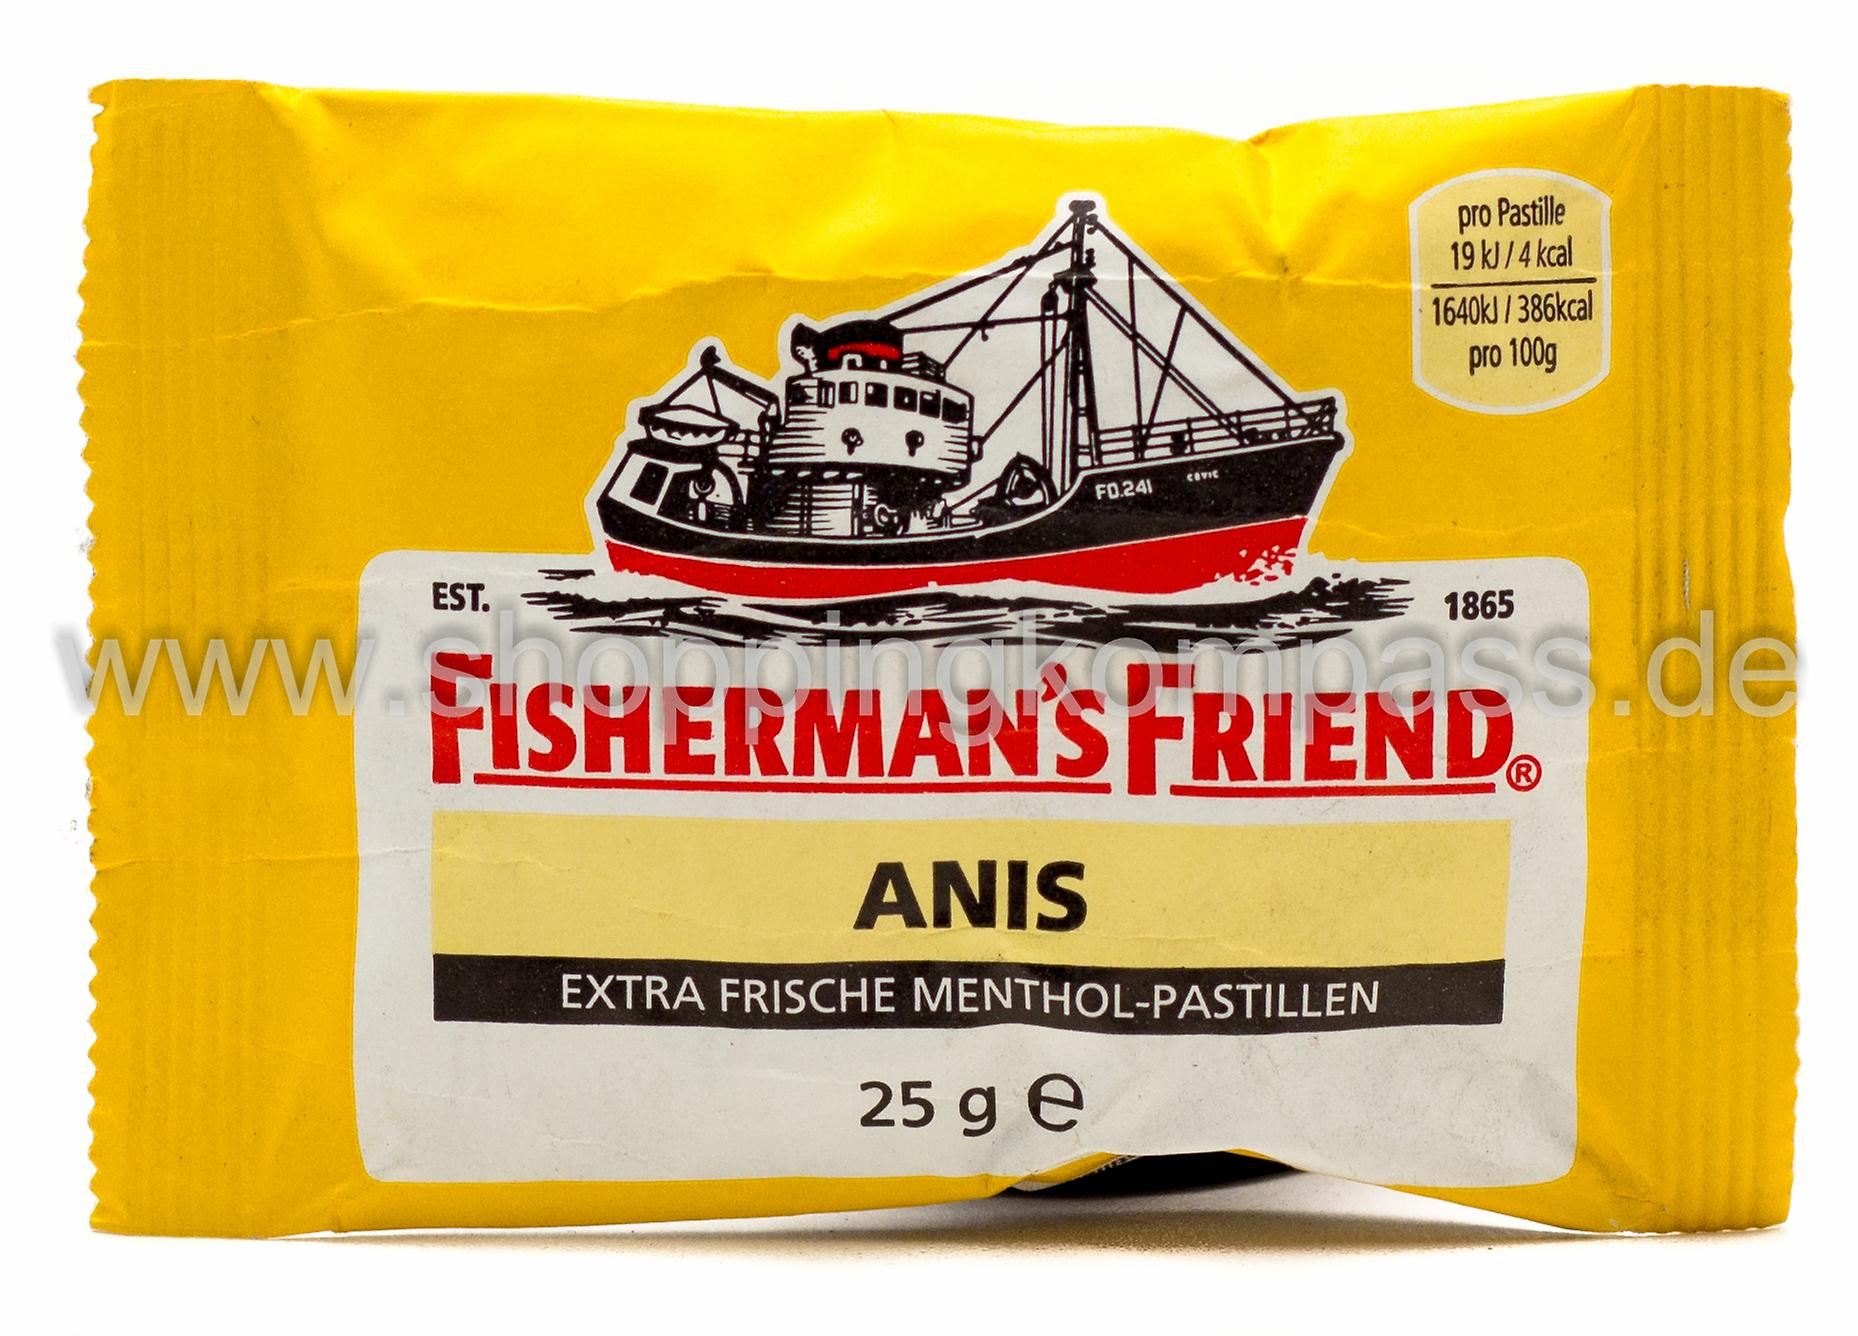 Fisherman's Friend Anis 25 g